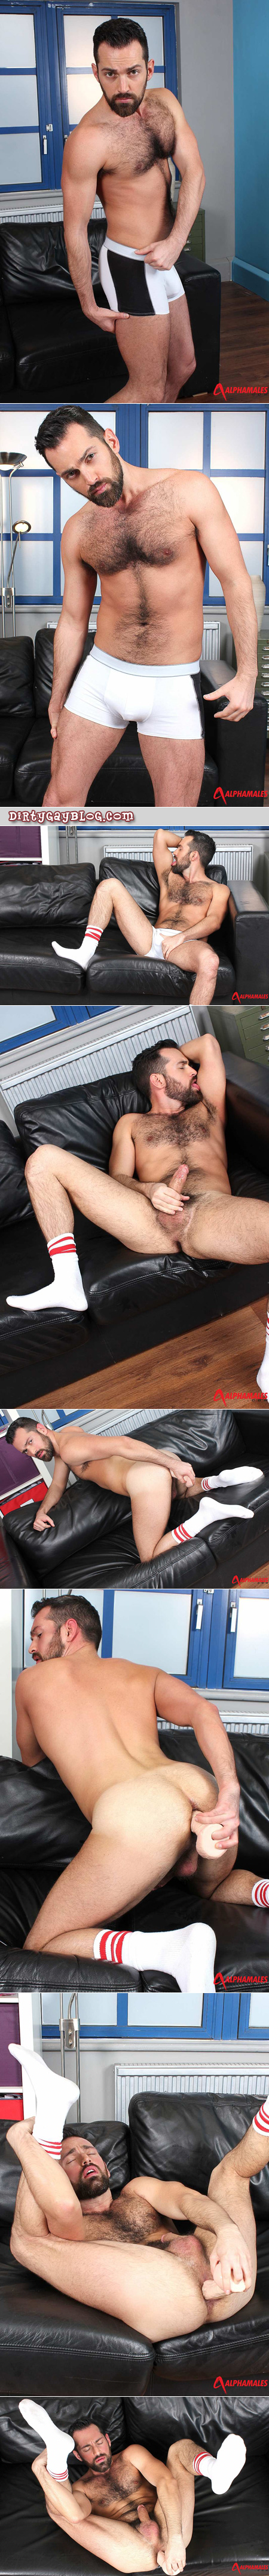 Muscle bear in white striped athletic socks and underwear jerking off with a veiny dildo in his ass.